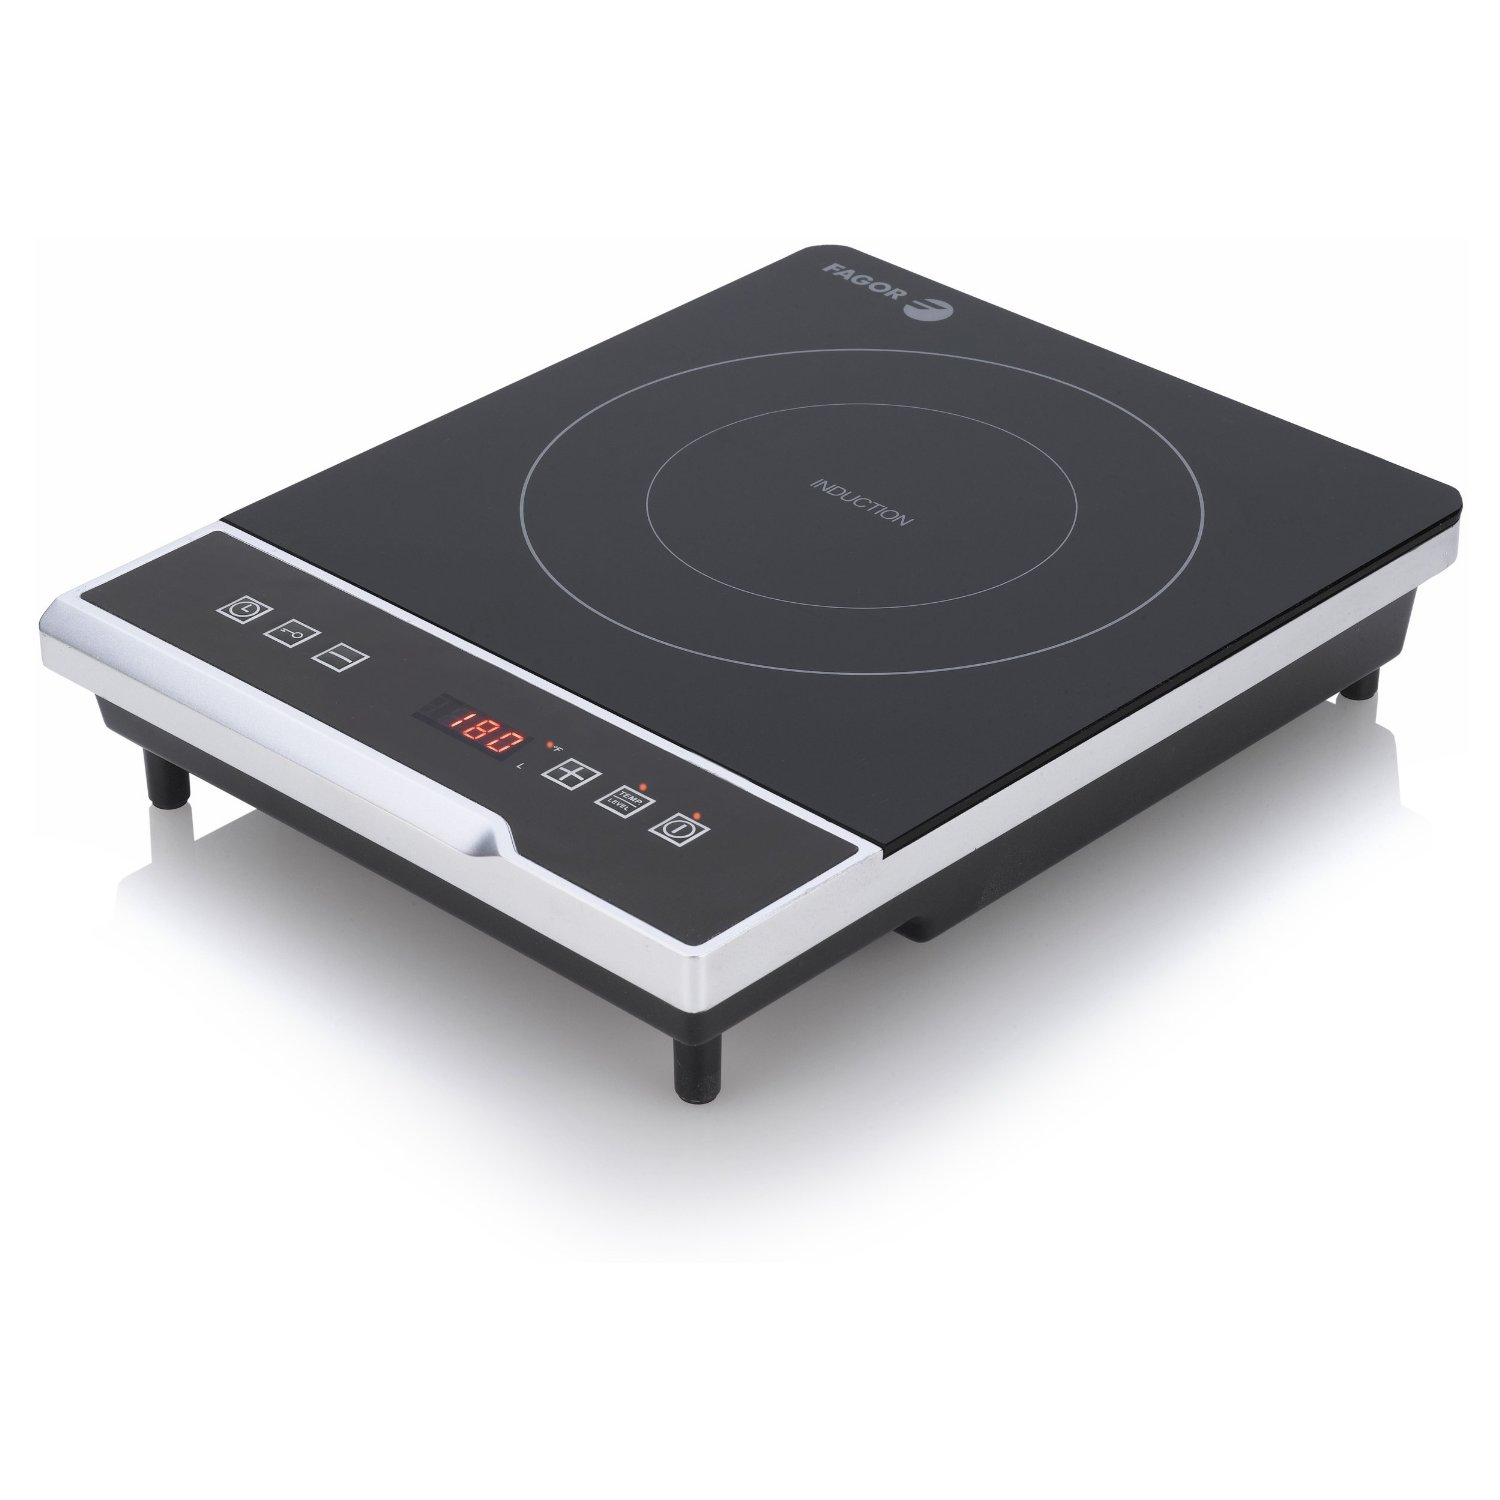 Induction Cooktop Fagor 670041920 Ucook Induction Cooktop Buy Review